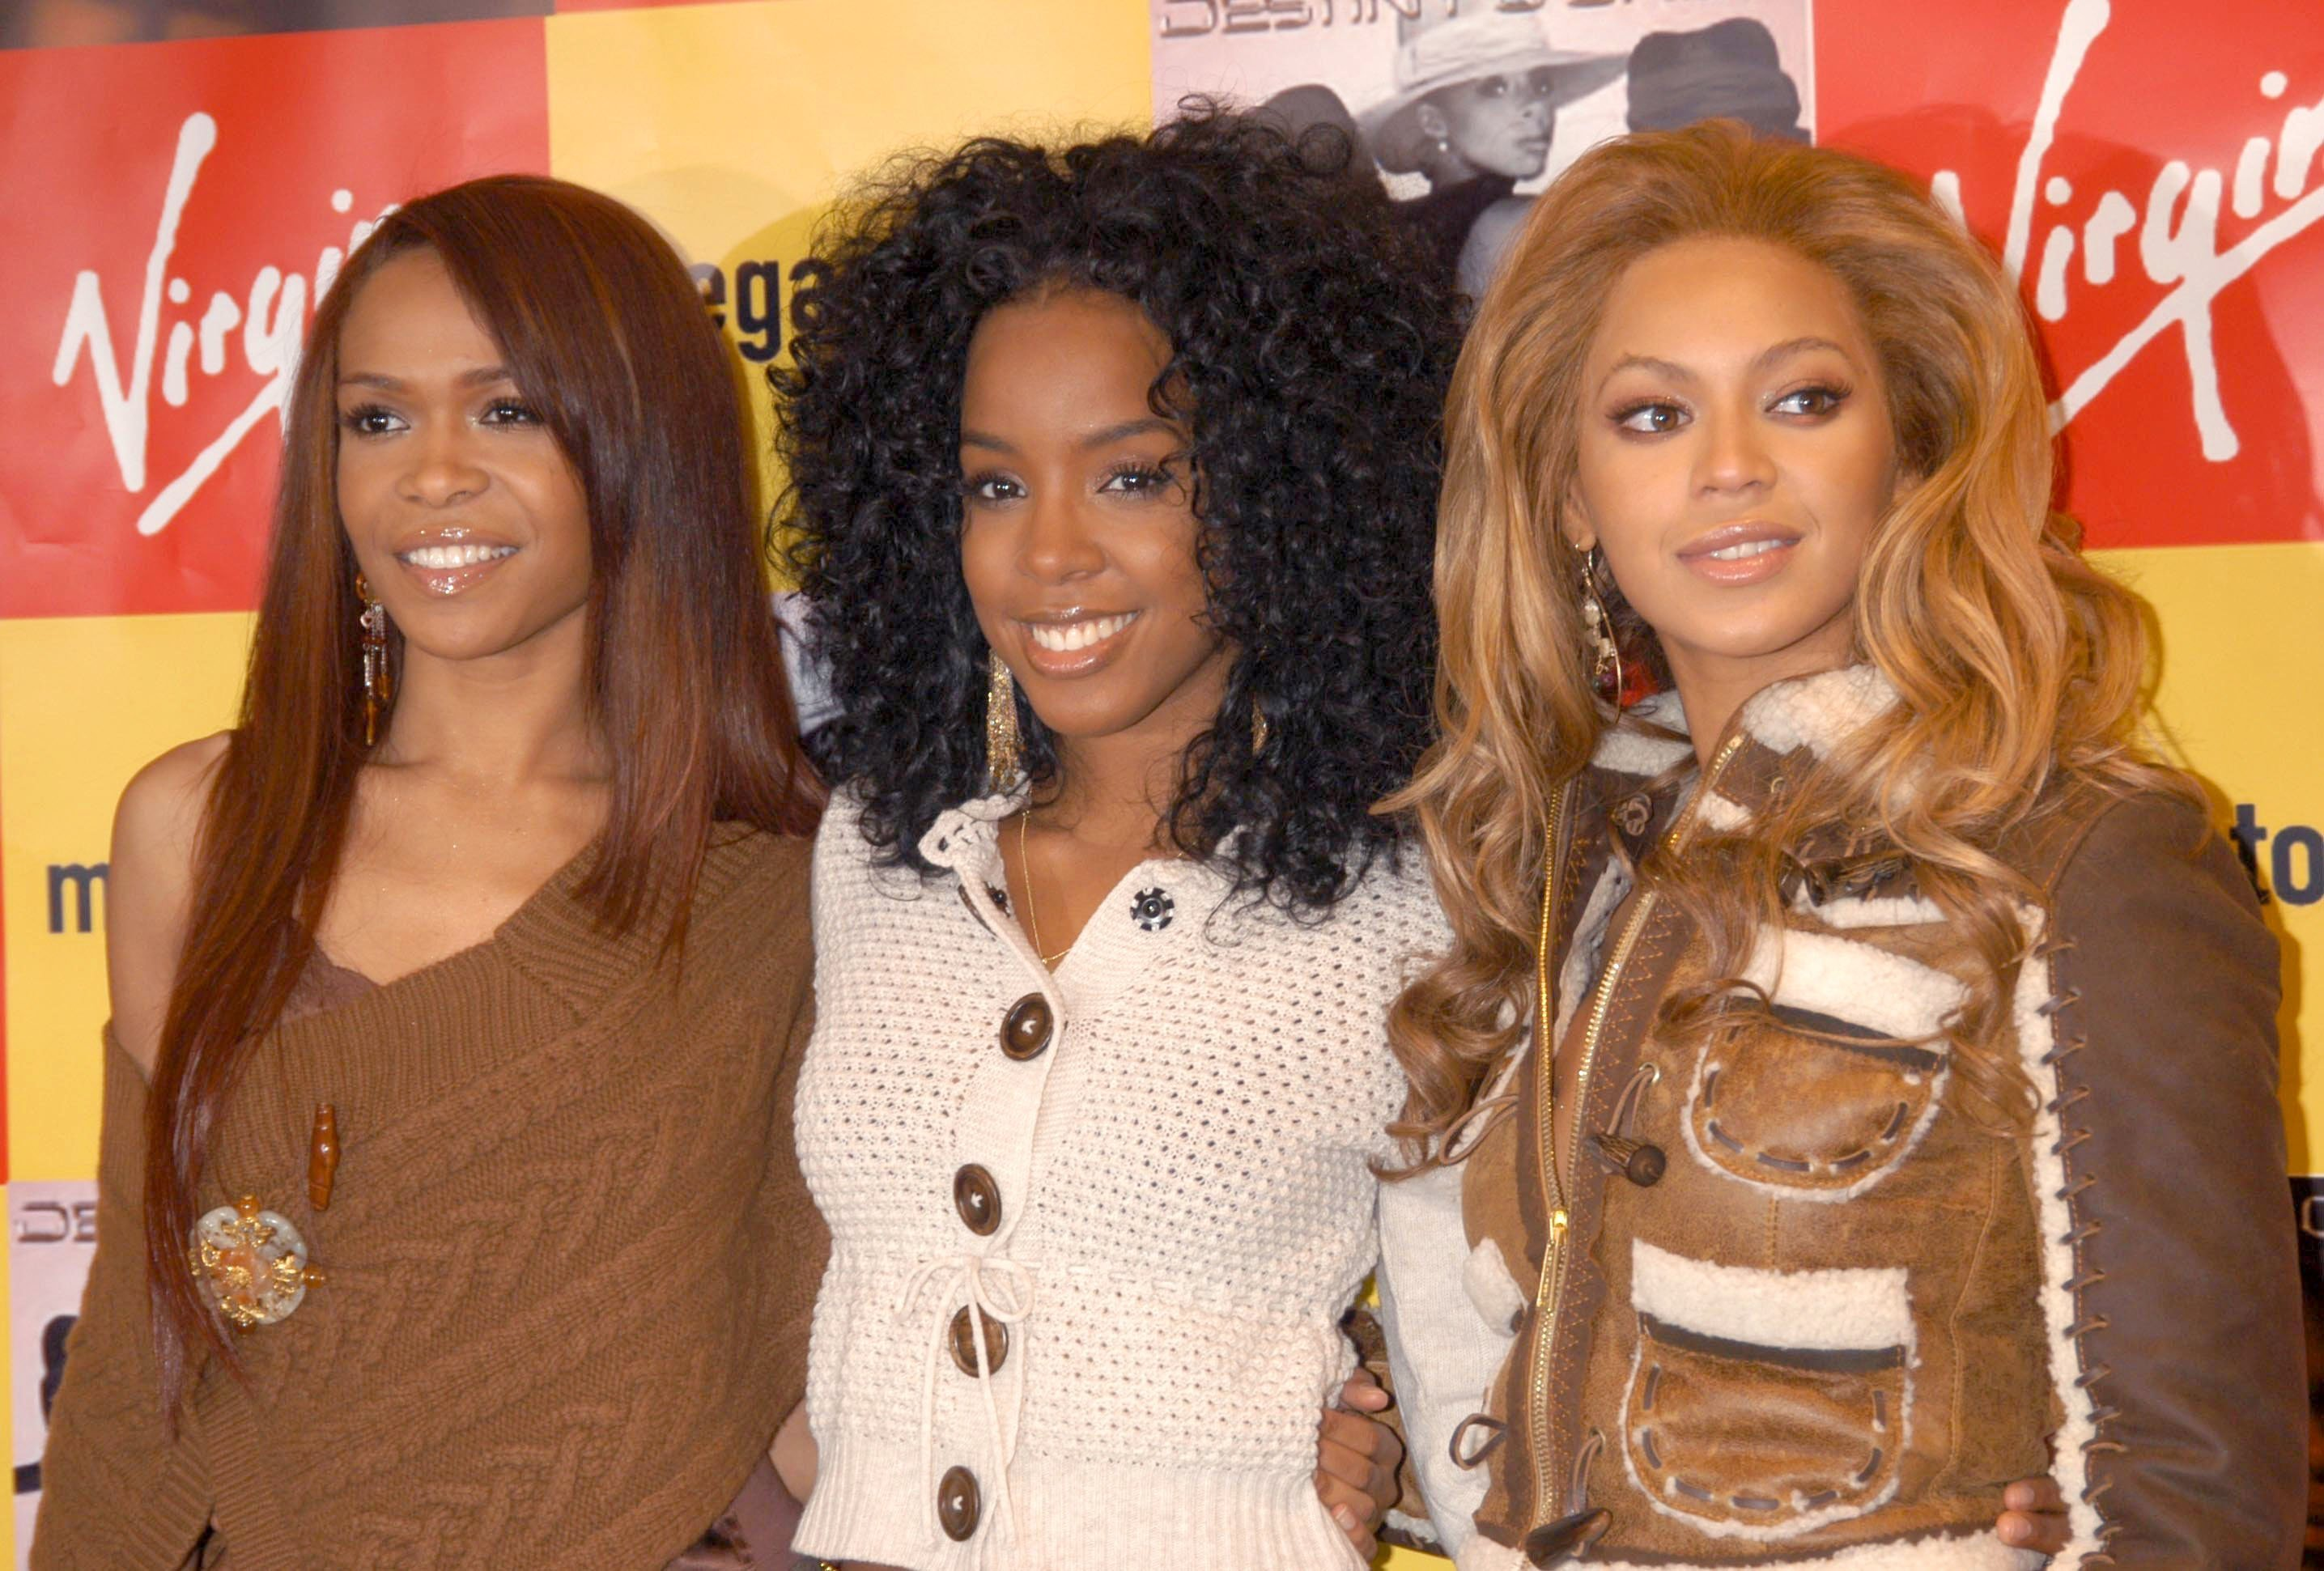 Destiny'S Child At Virgin Megastore, Piccadilly, London, Britain - 01 Nov 2004. | Photo: GettyImages